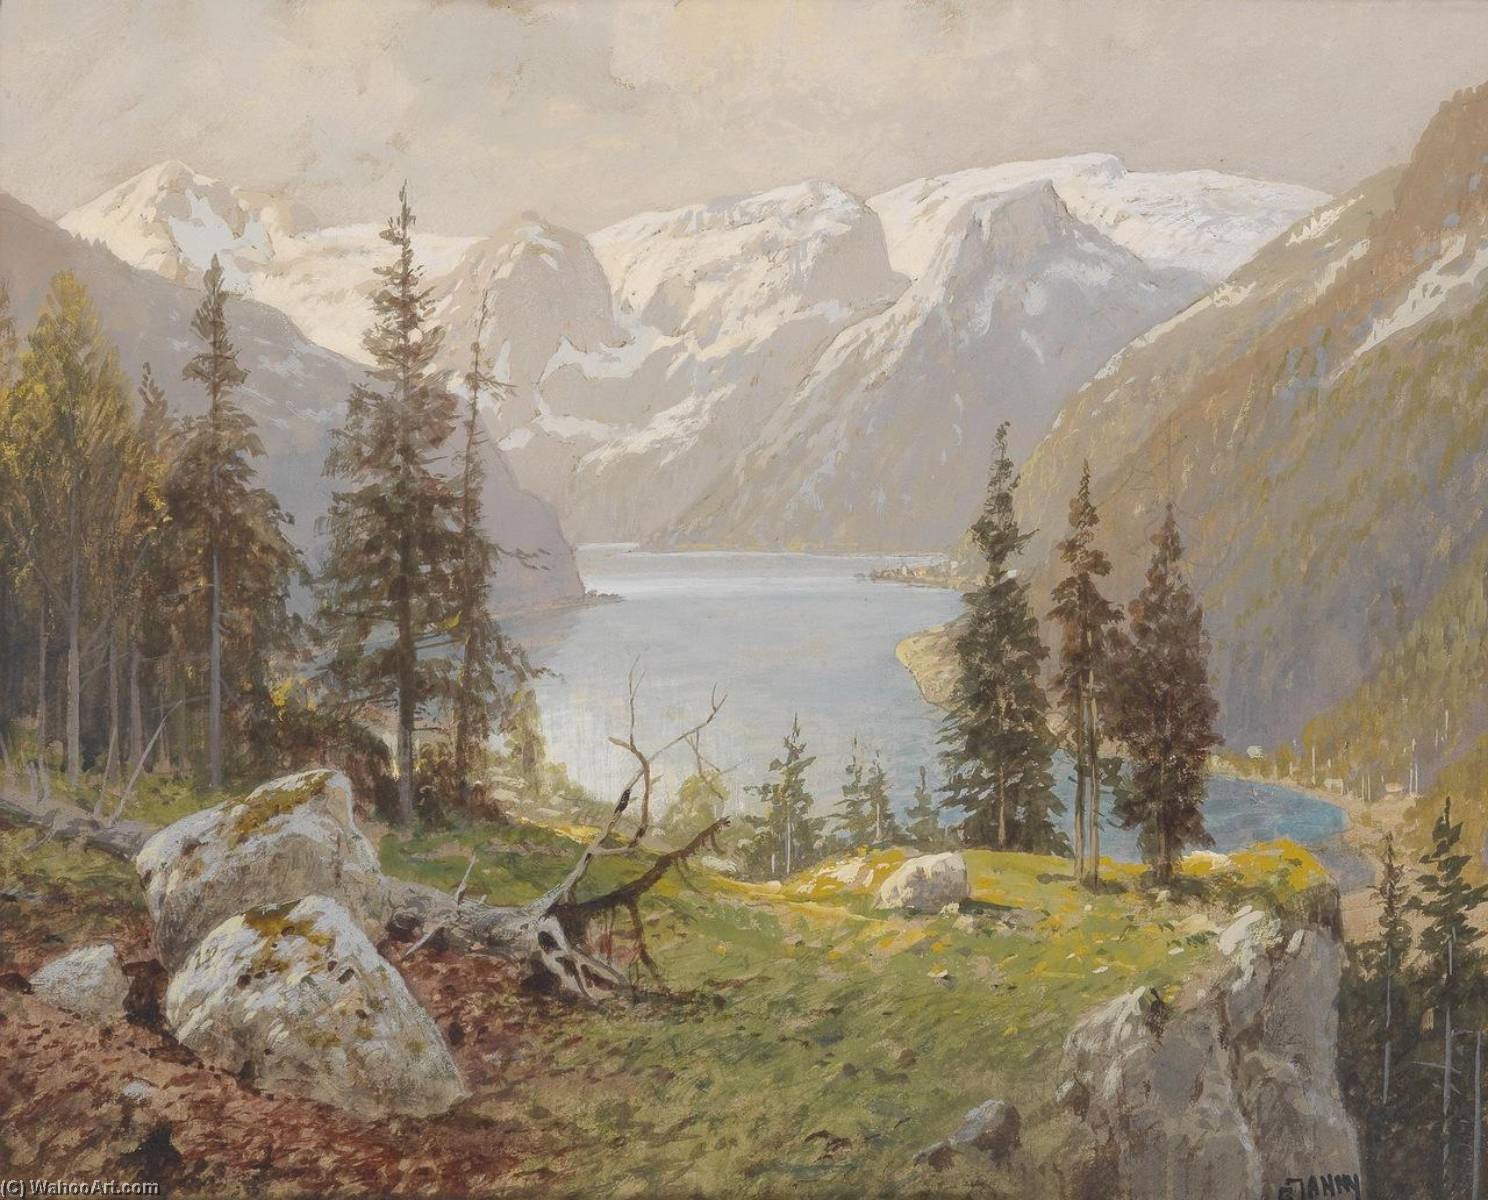 Hallstädter Lake and Northern Slope of the Dachstein Plateau, Watercolour by Georg Janny